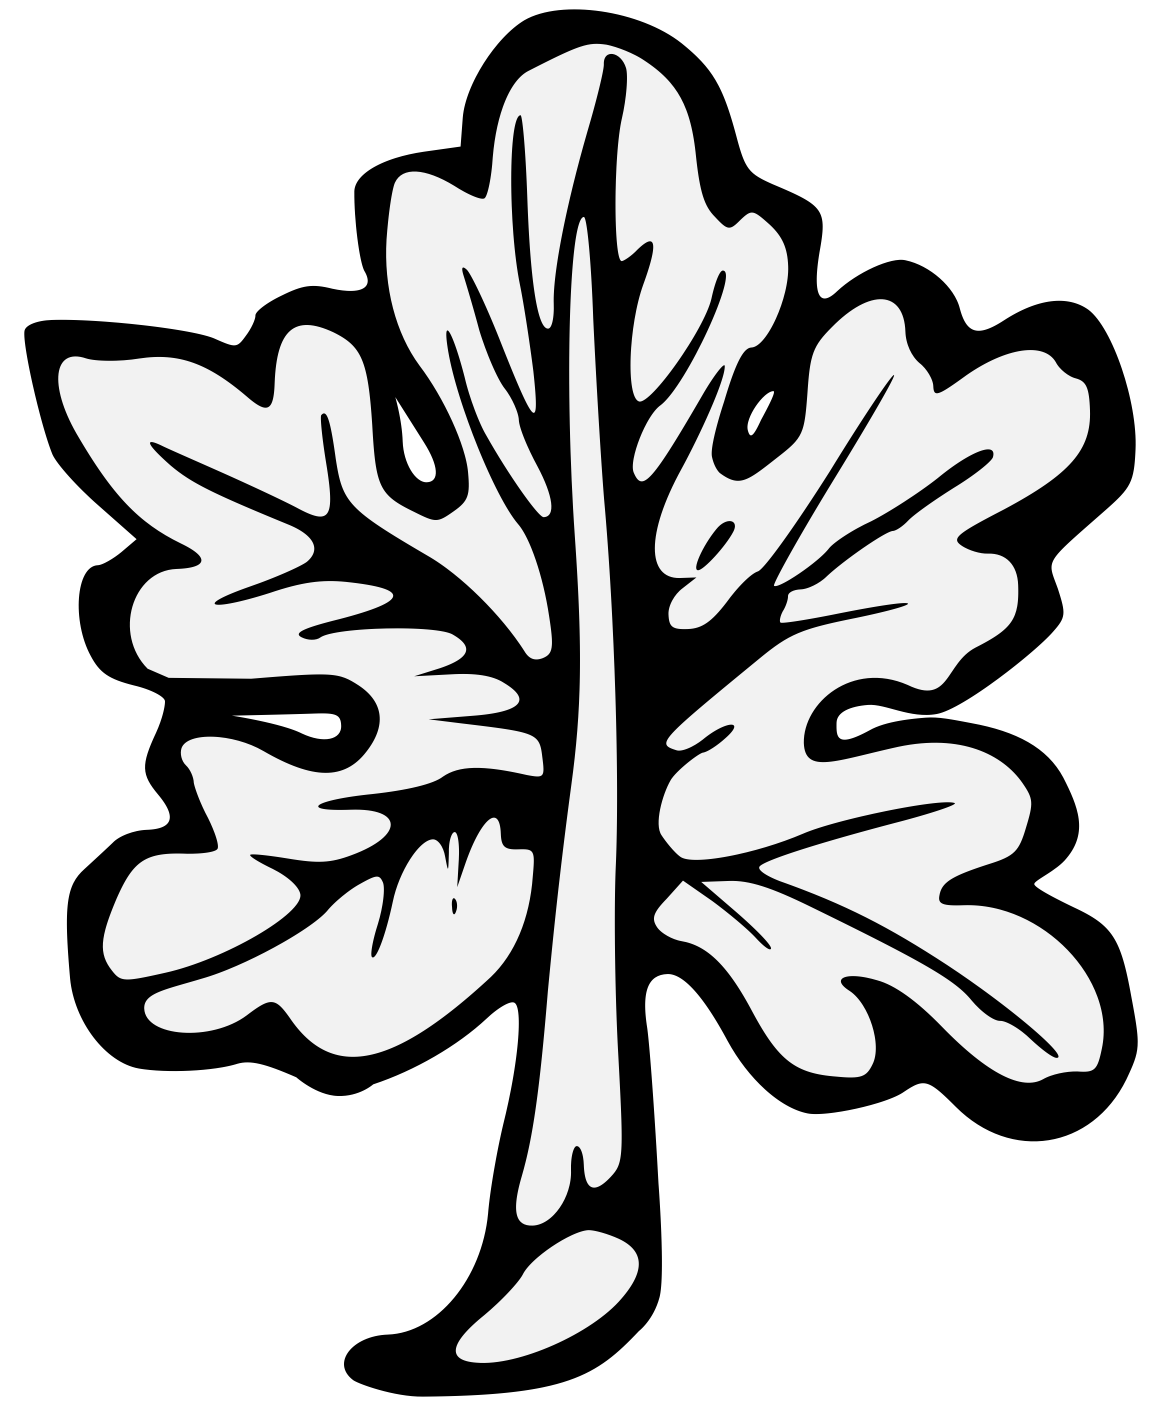 Vines svg traceable. Leaf heraldic art details